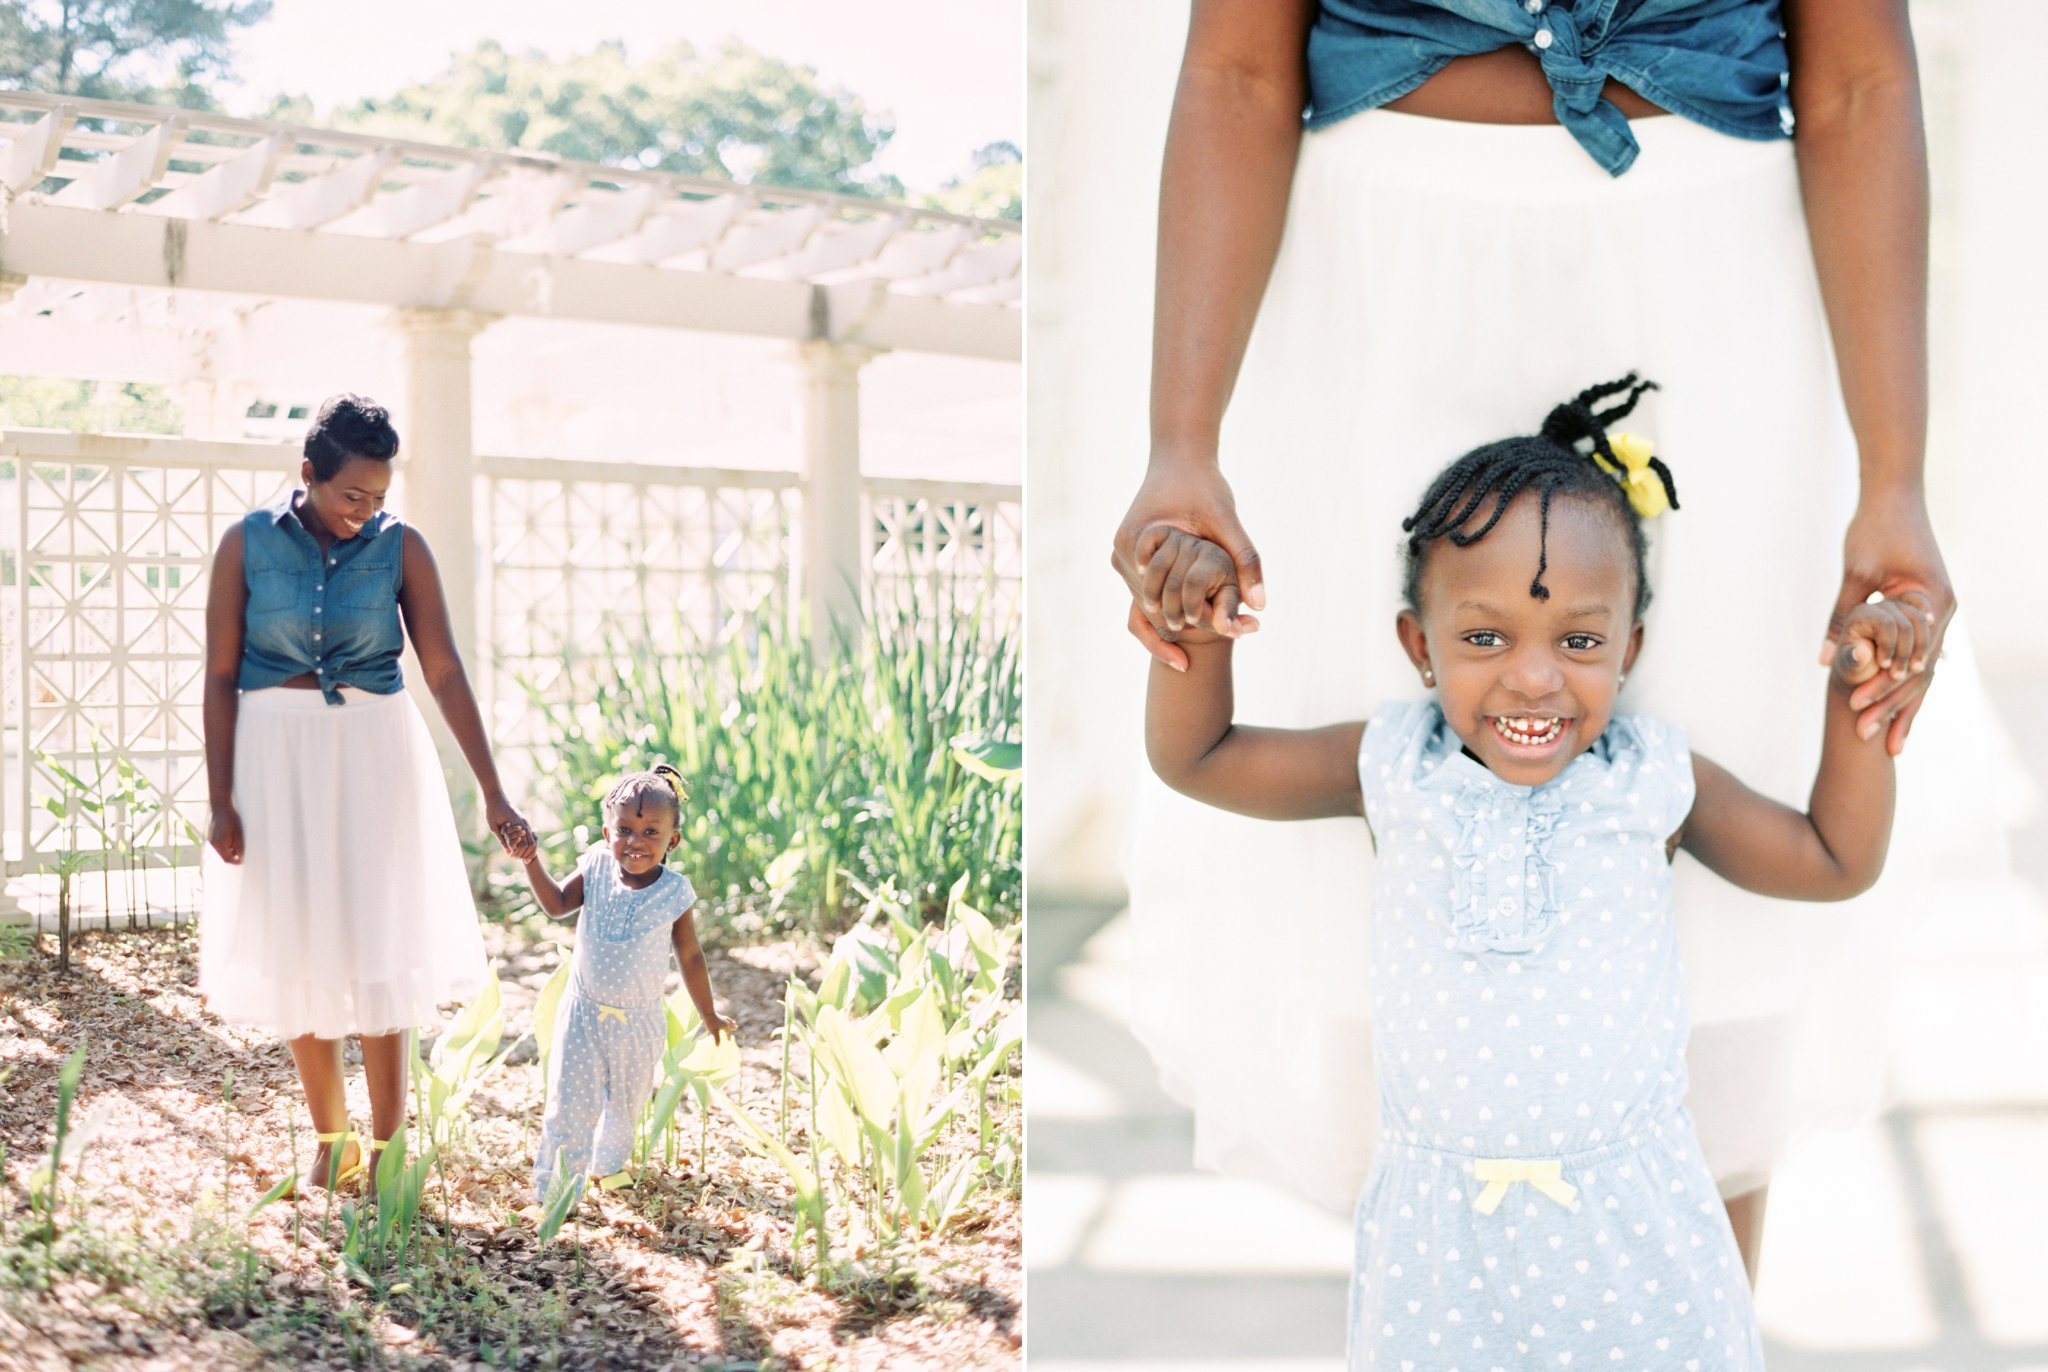 tips for the perfect holiday photos west palm beach family photographer shannon griffin photography_0016.jpg